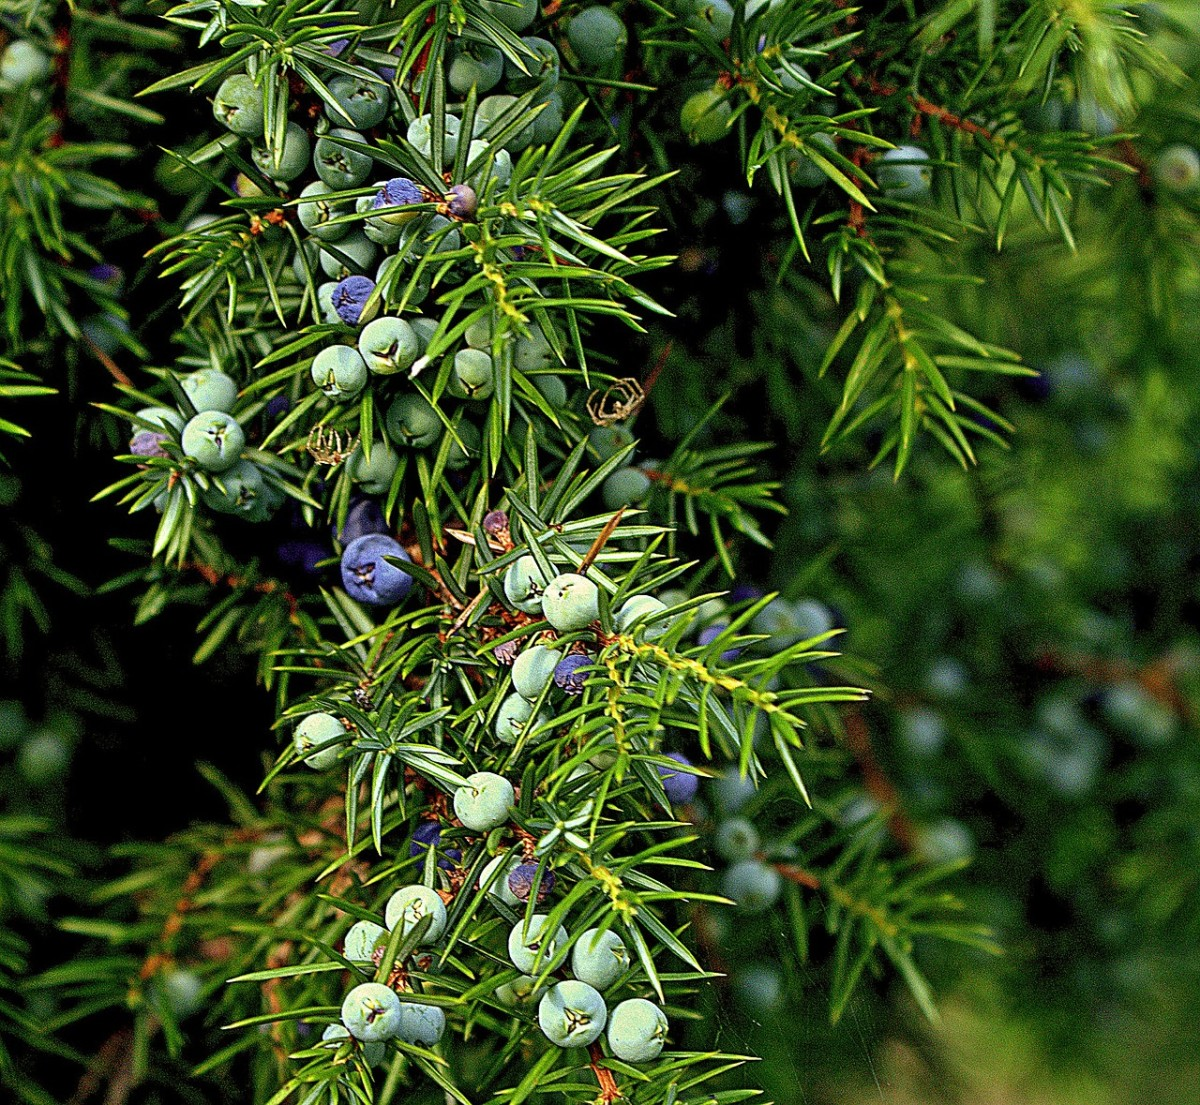 Juniper berries contain many ingredients to help arthritis sufferers.